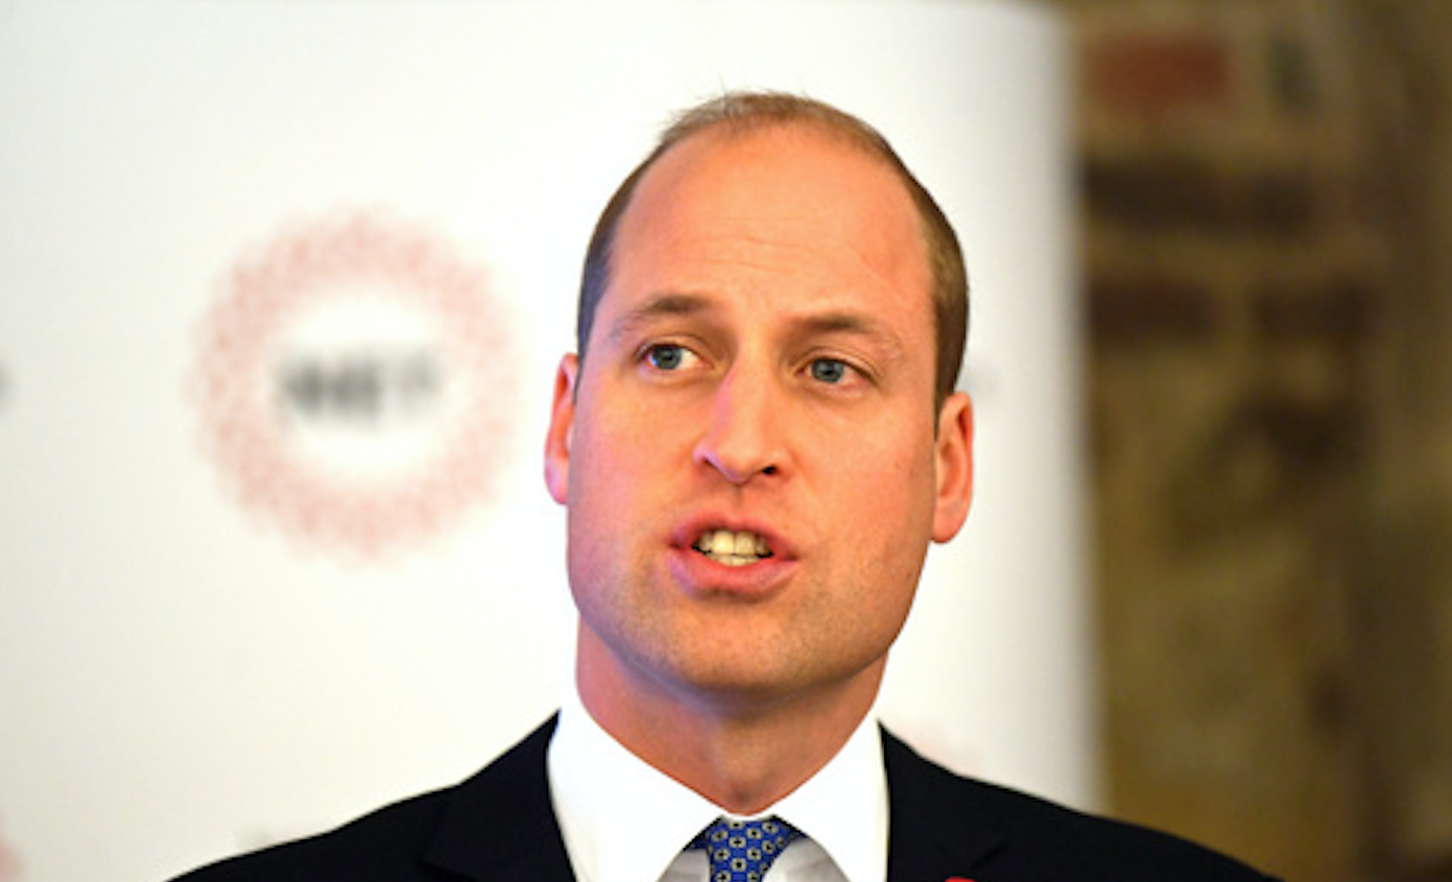 Prince William 'promoted' to new role by Queen as Prince Harry steps away from royal family